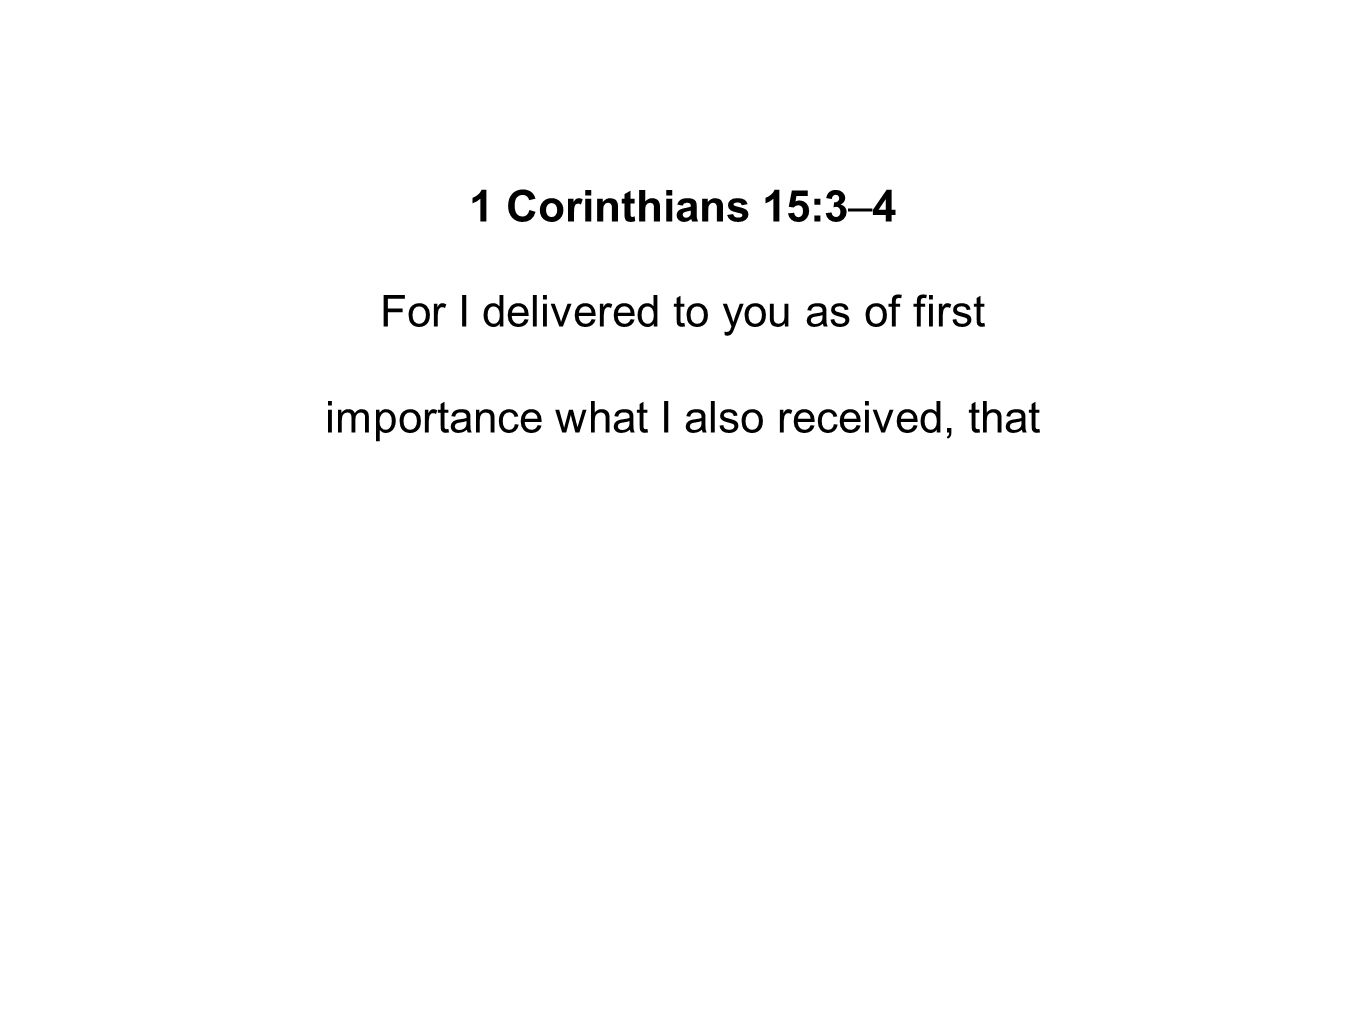 1 Corinthians 15:3–4 For I delivered to you as of first importance what I also received, that